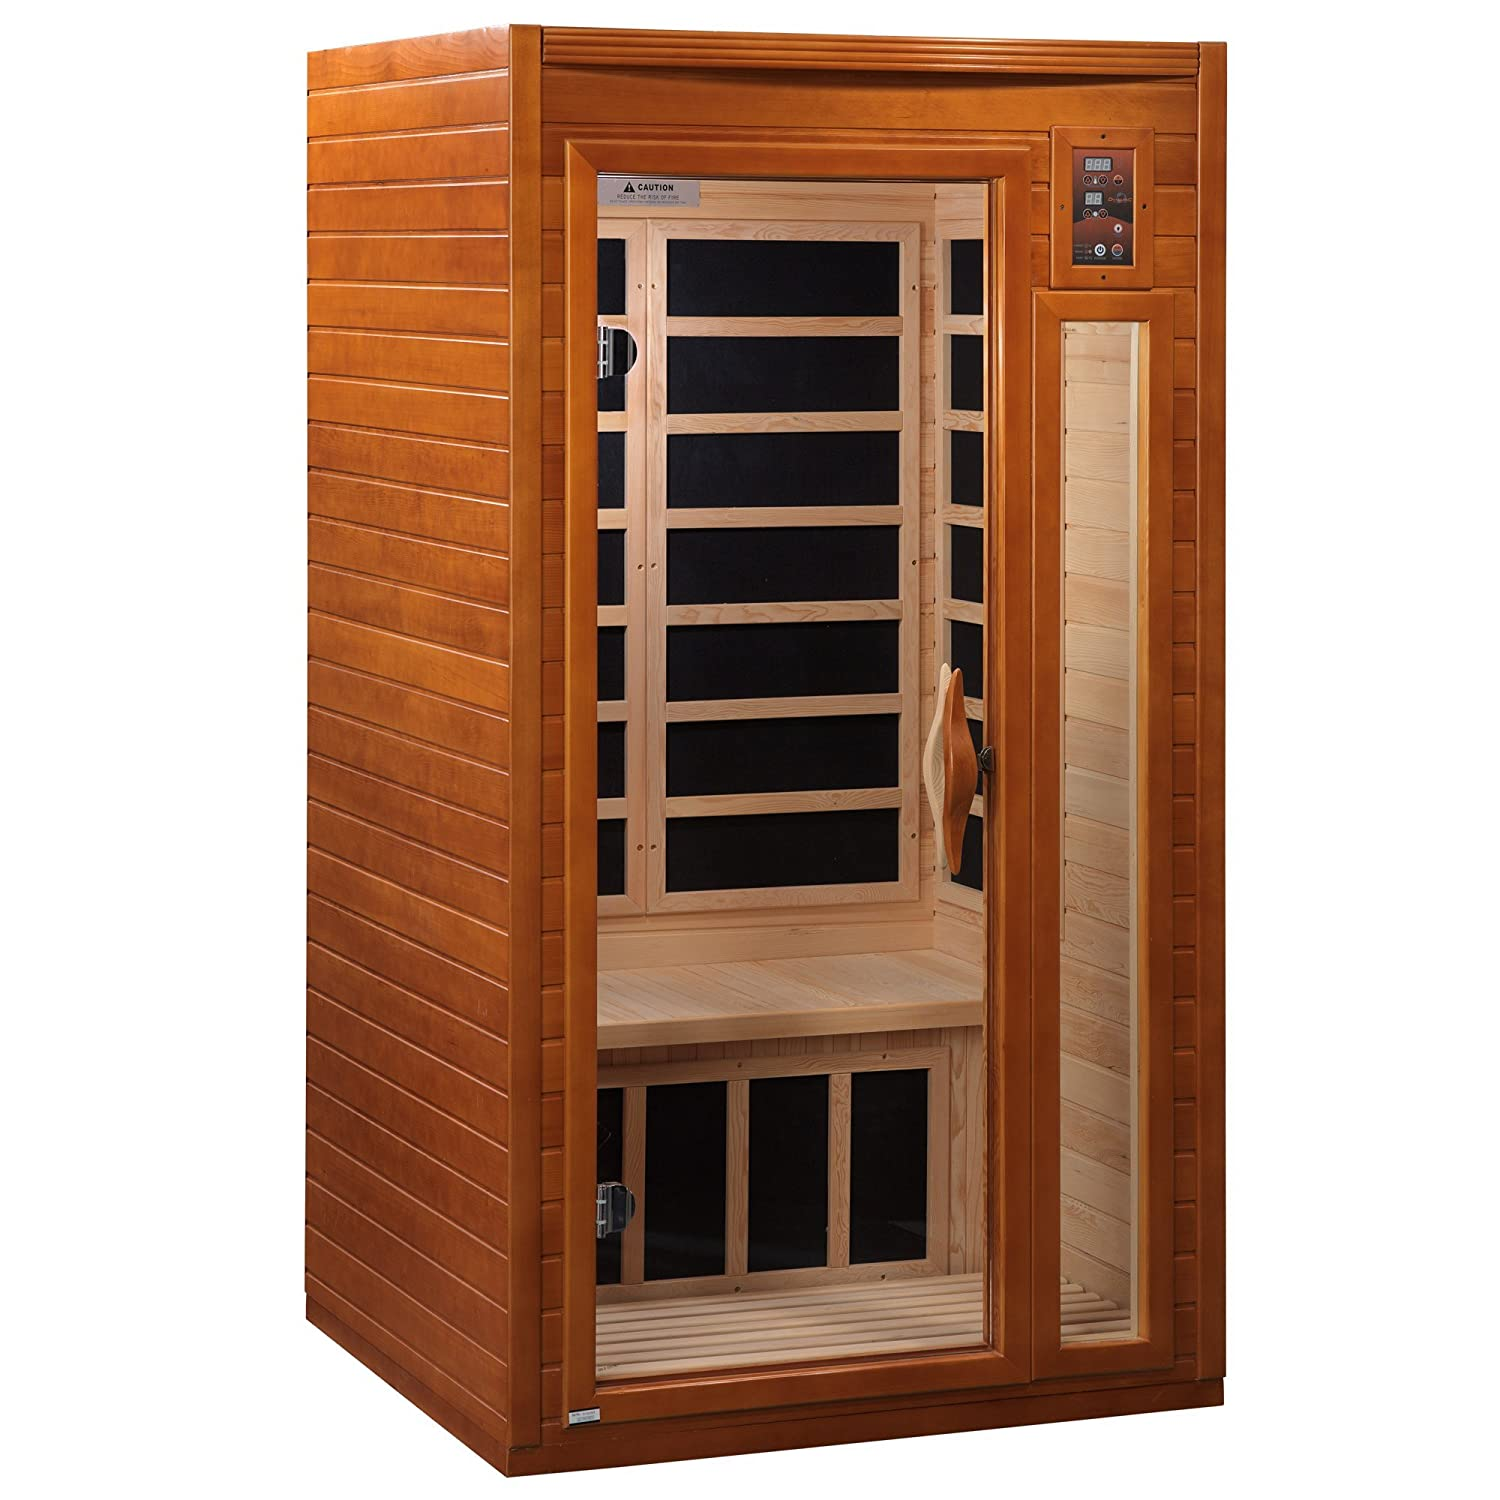 DYNAMIC SAUNAS AMZ-DYN-6106-01 Barcelona 1-2 Person Far Infrared Sauna –Curbside Shipping